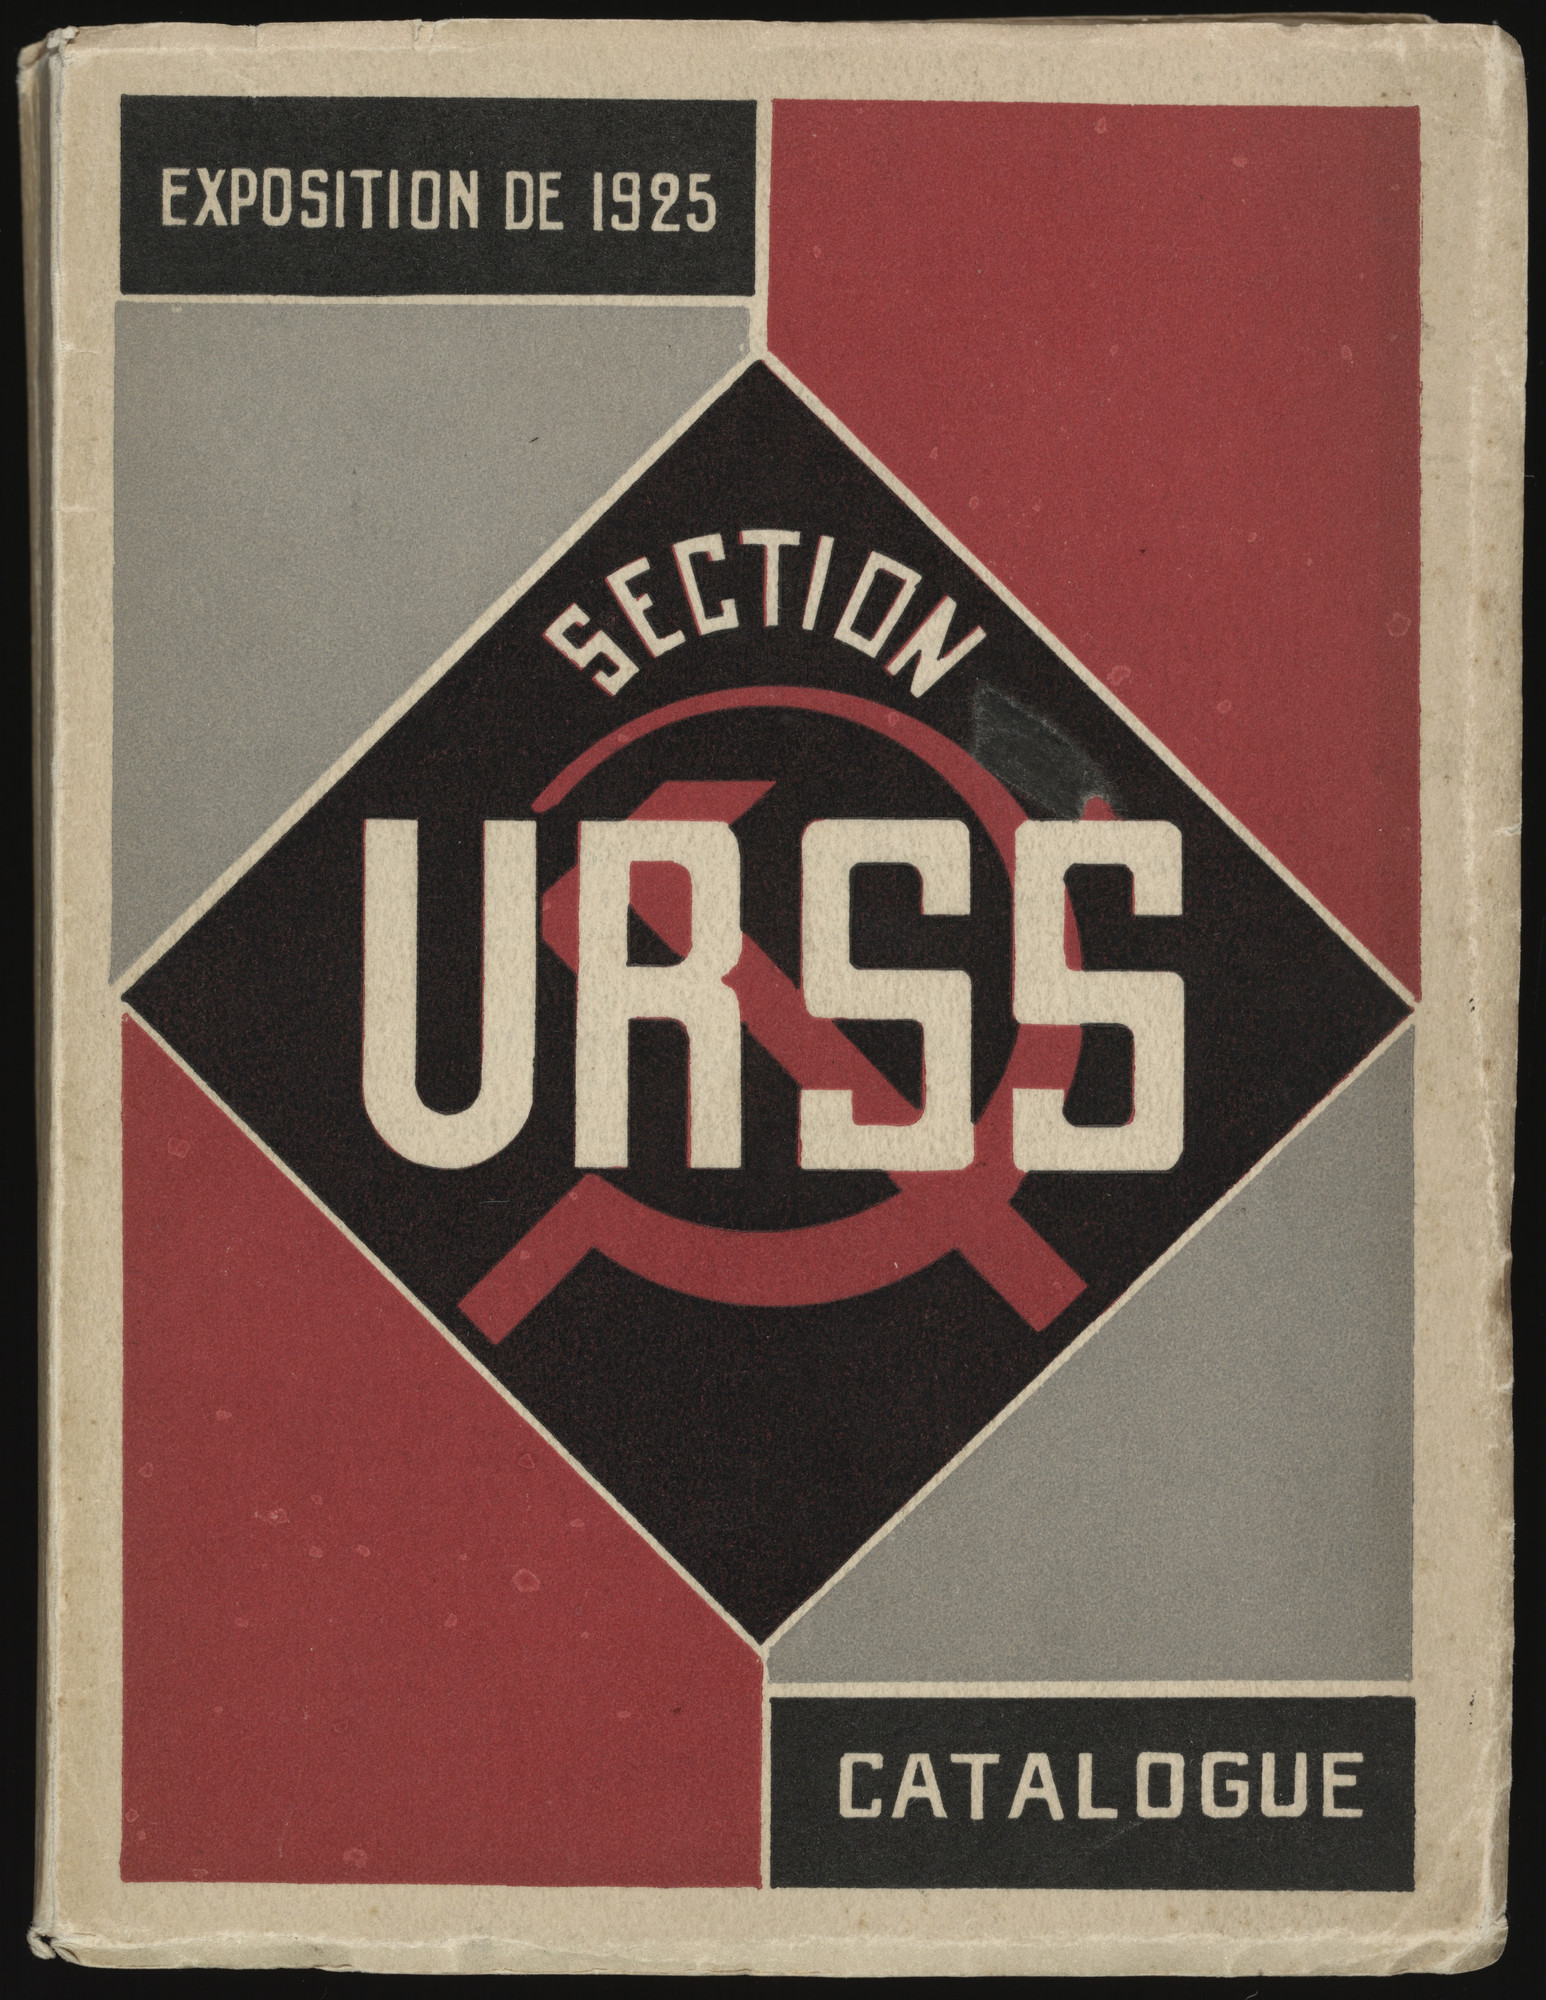 Aleksandr Rodchenko. Section URSS: Exposition de 1925 (USSR Section: Catalogue of the 1925 Exhibition). 1925